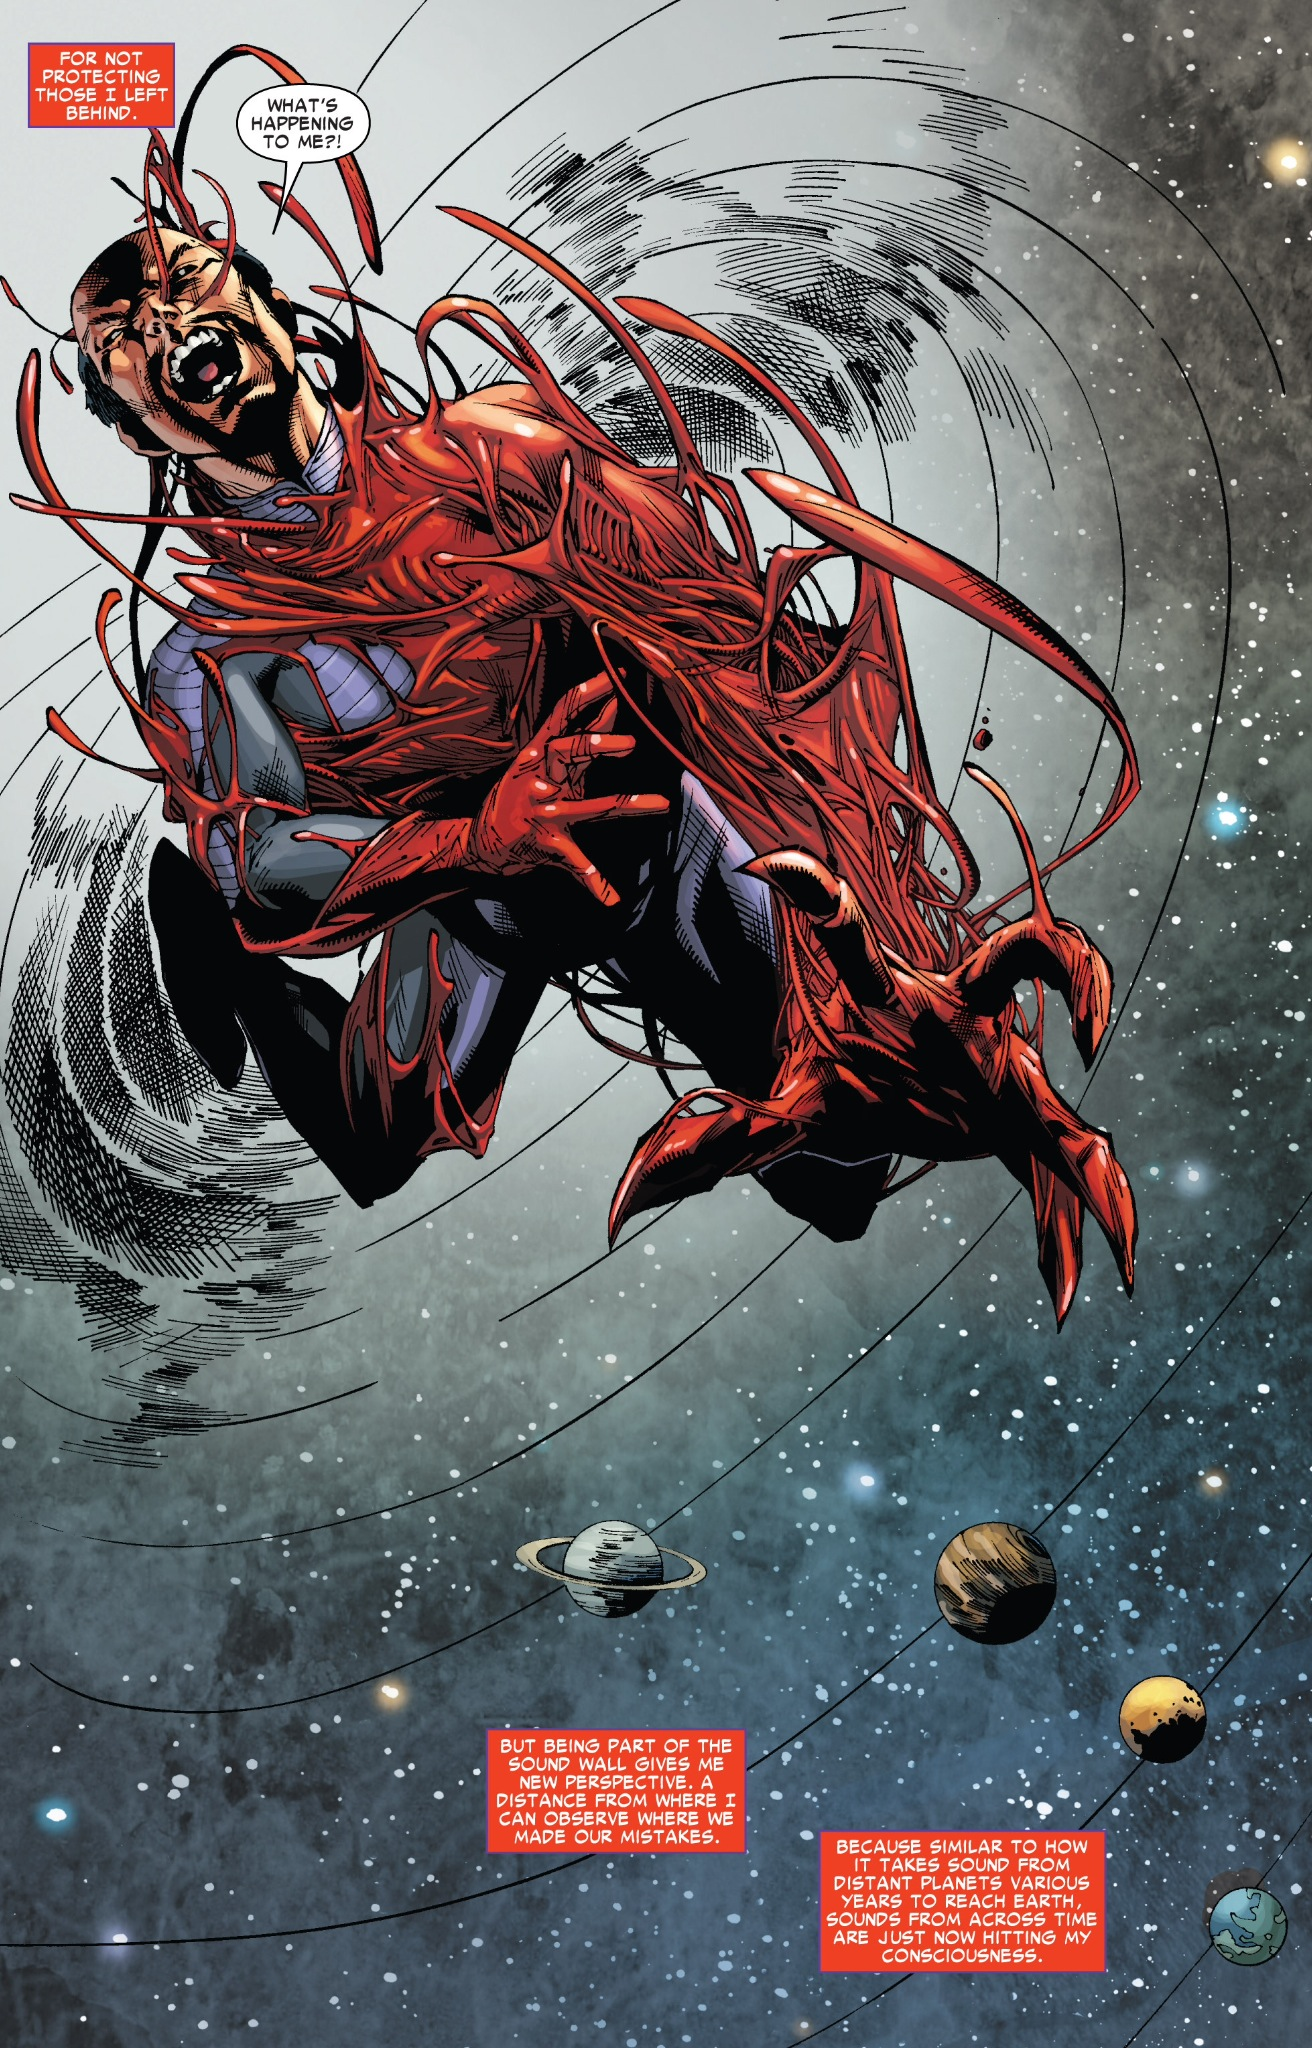 Superior Carnage #5 and a Return to the Status Quo (Sadly)